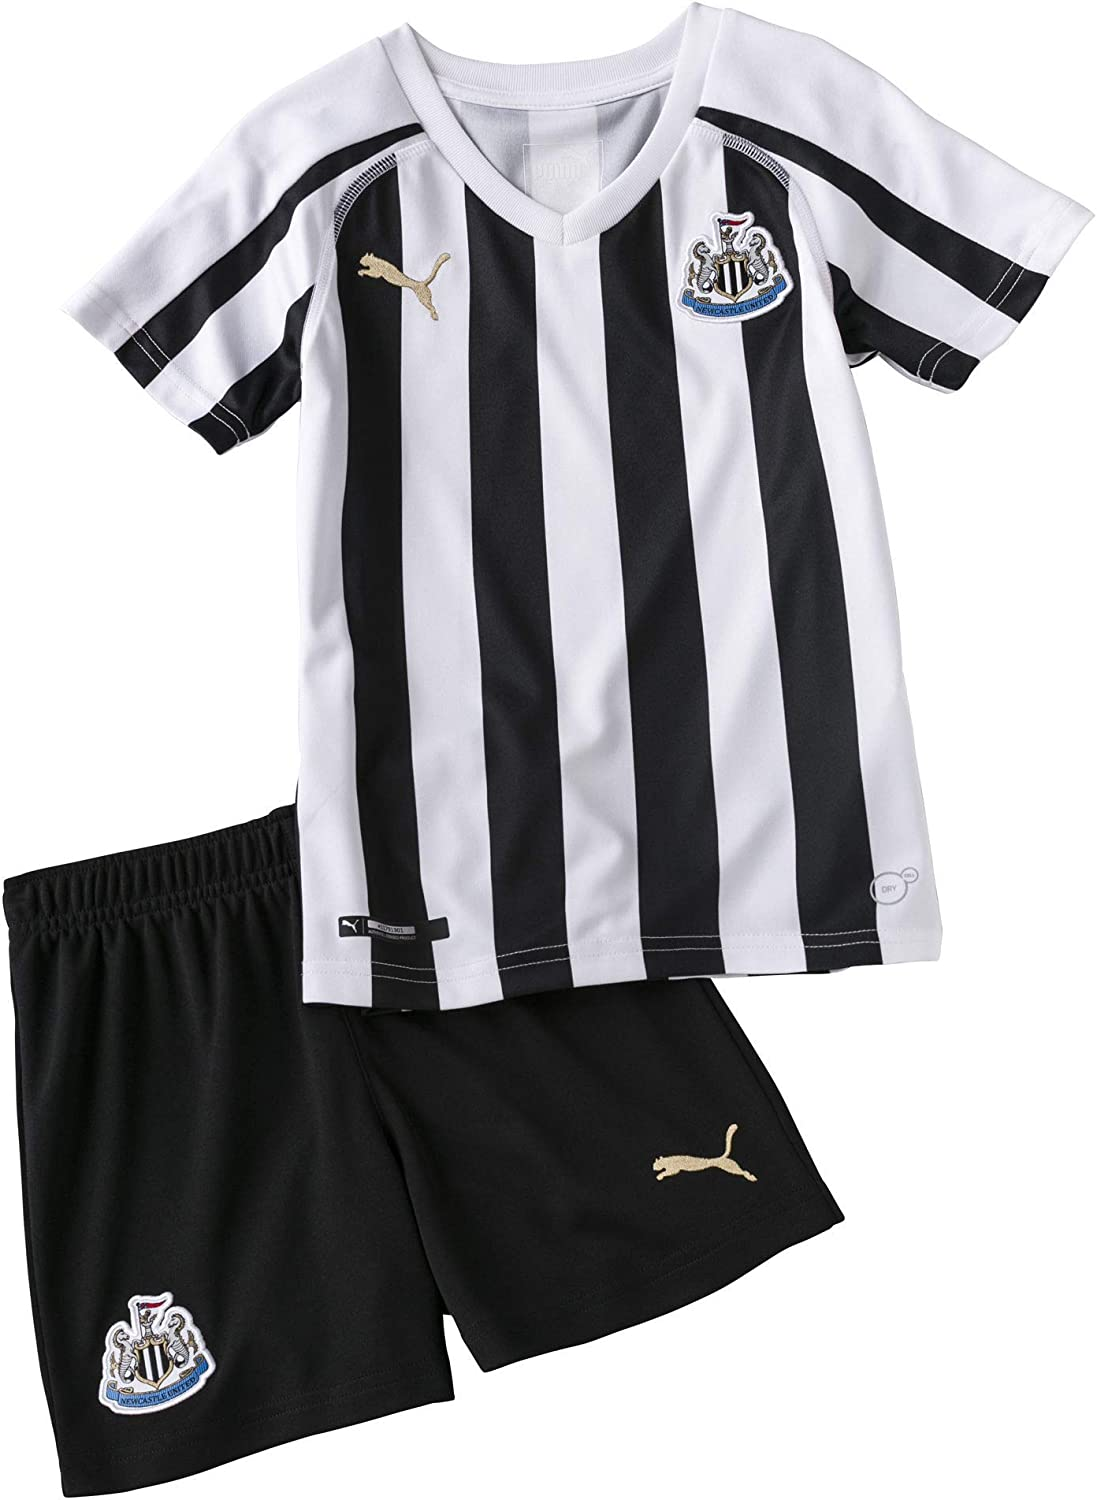 NEW Newcastle United FC Boys T Shirt Age 5 6 Yrs Kids Official NUFC Football Top